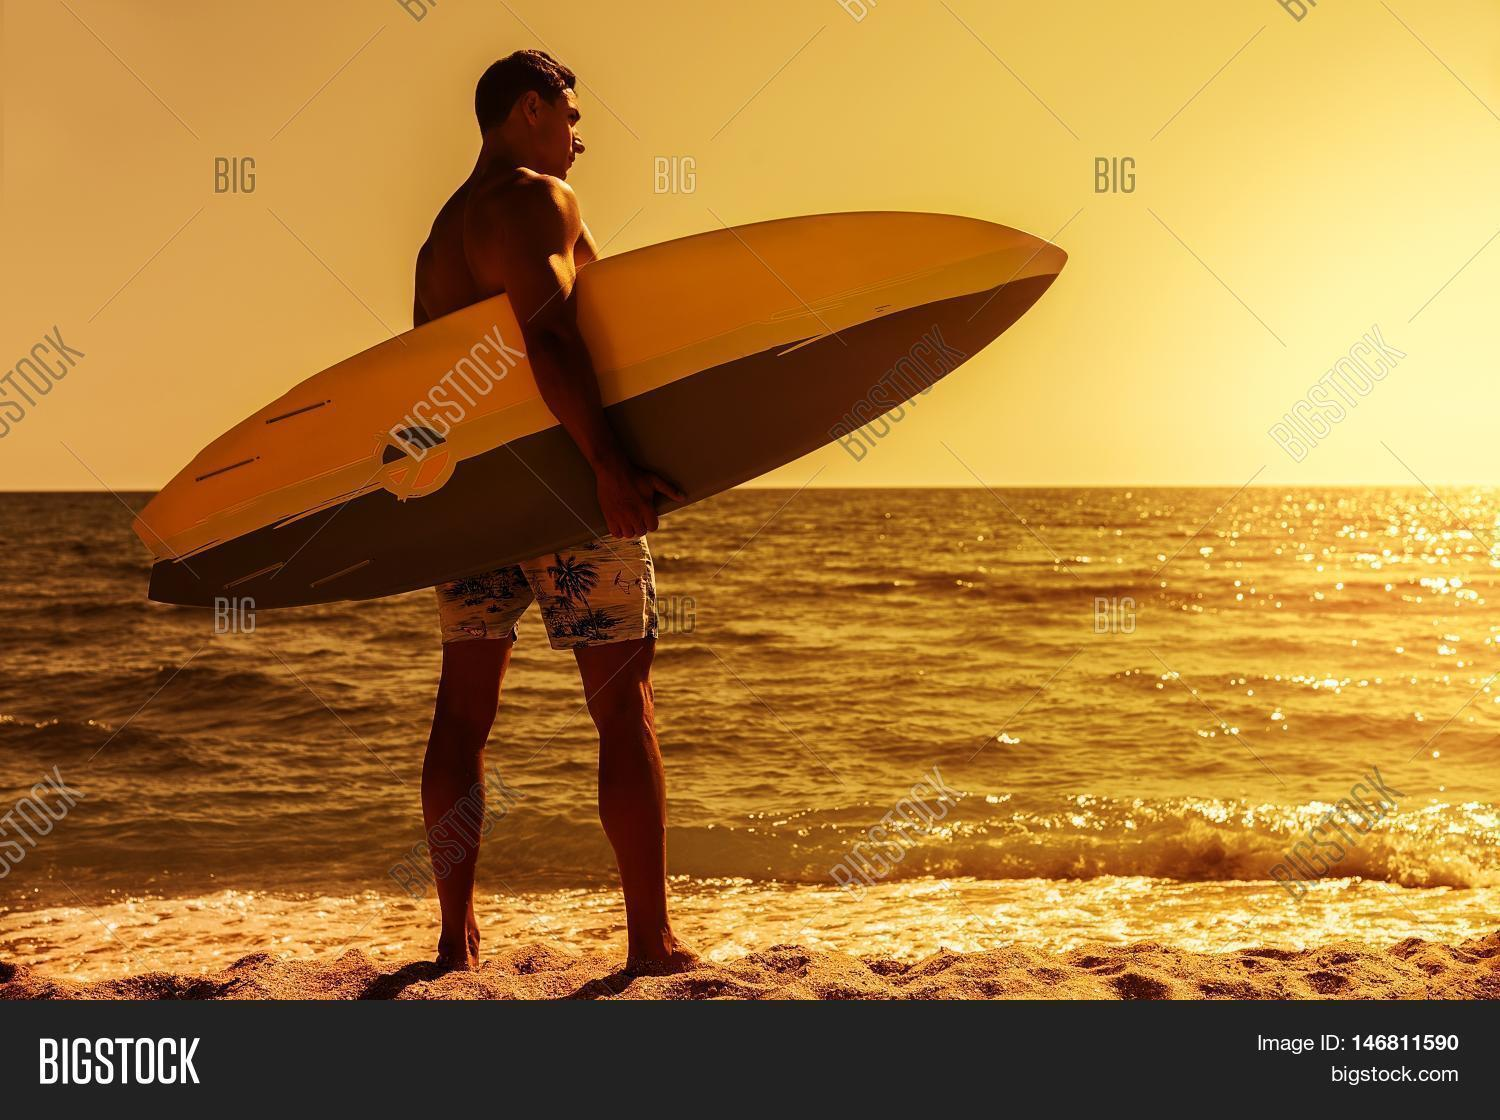 Surfer Man On Beach Image Photo Free Trial Bigstock